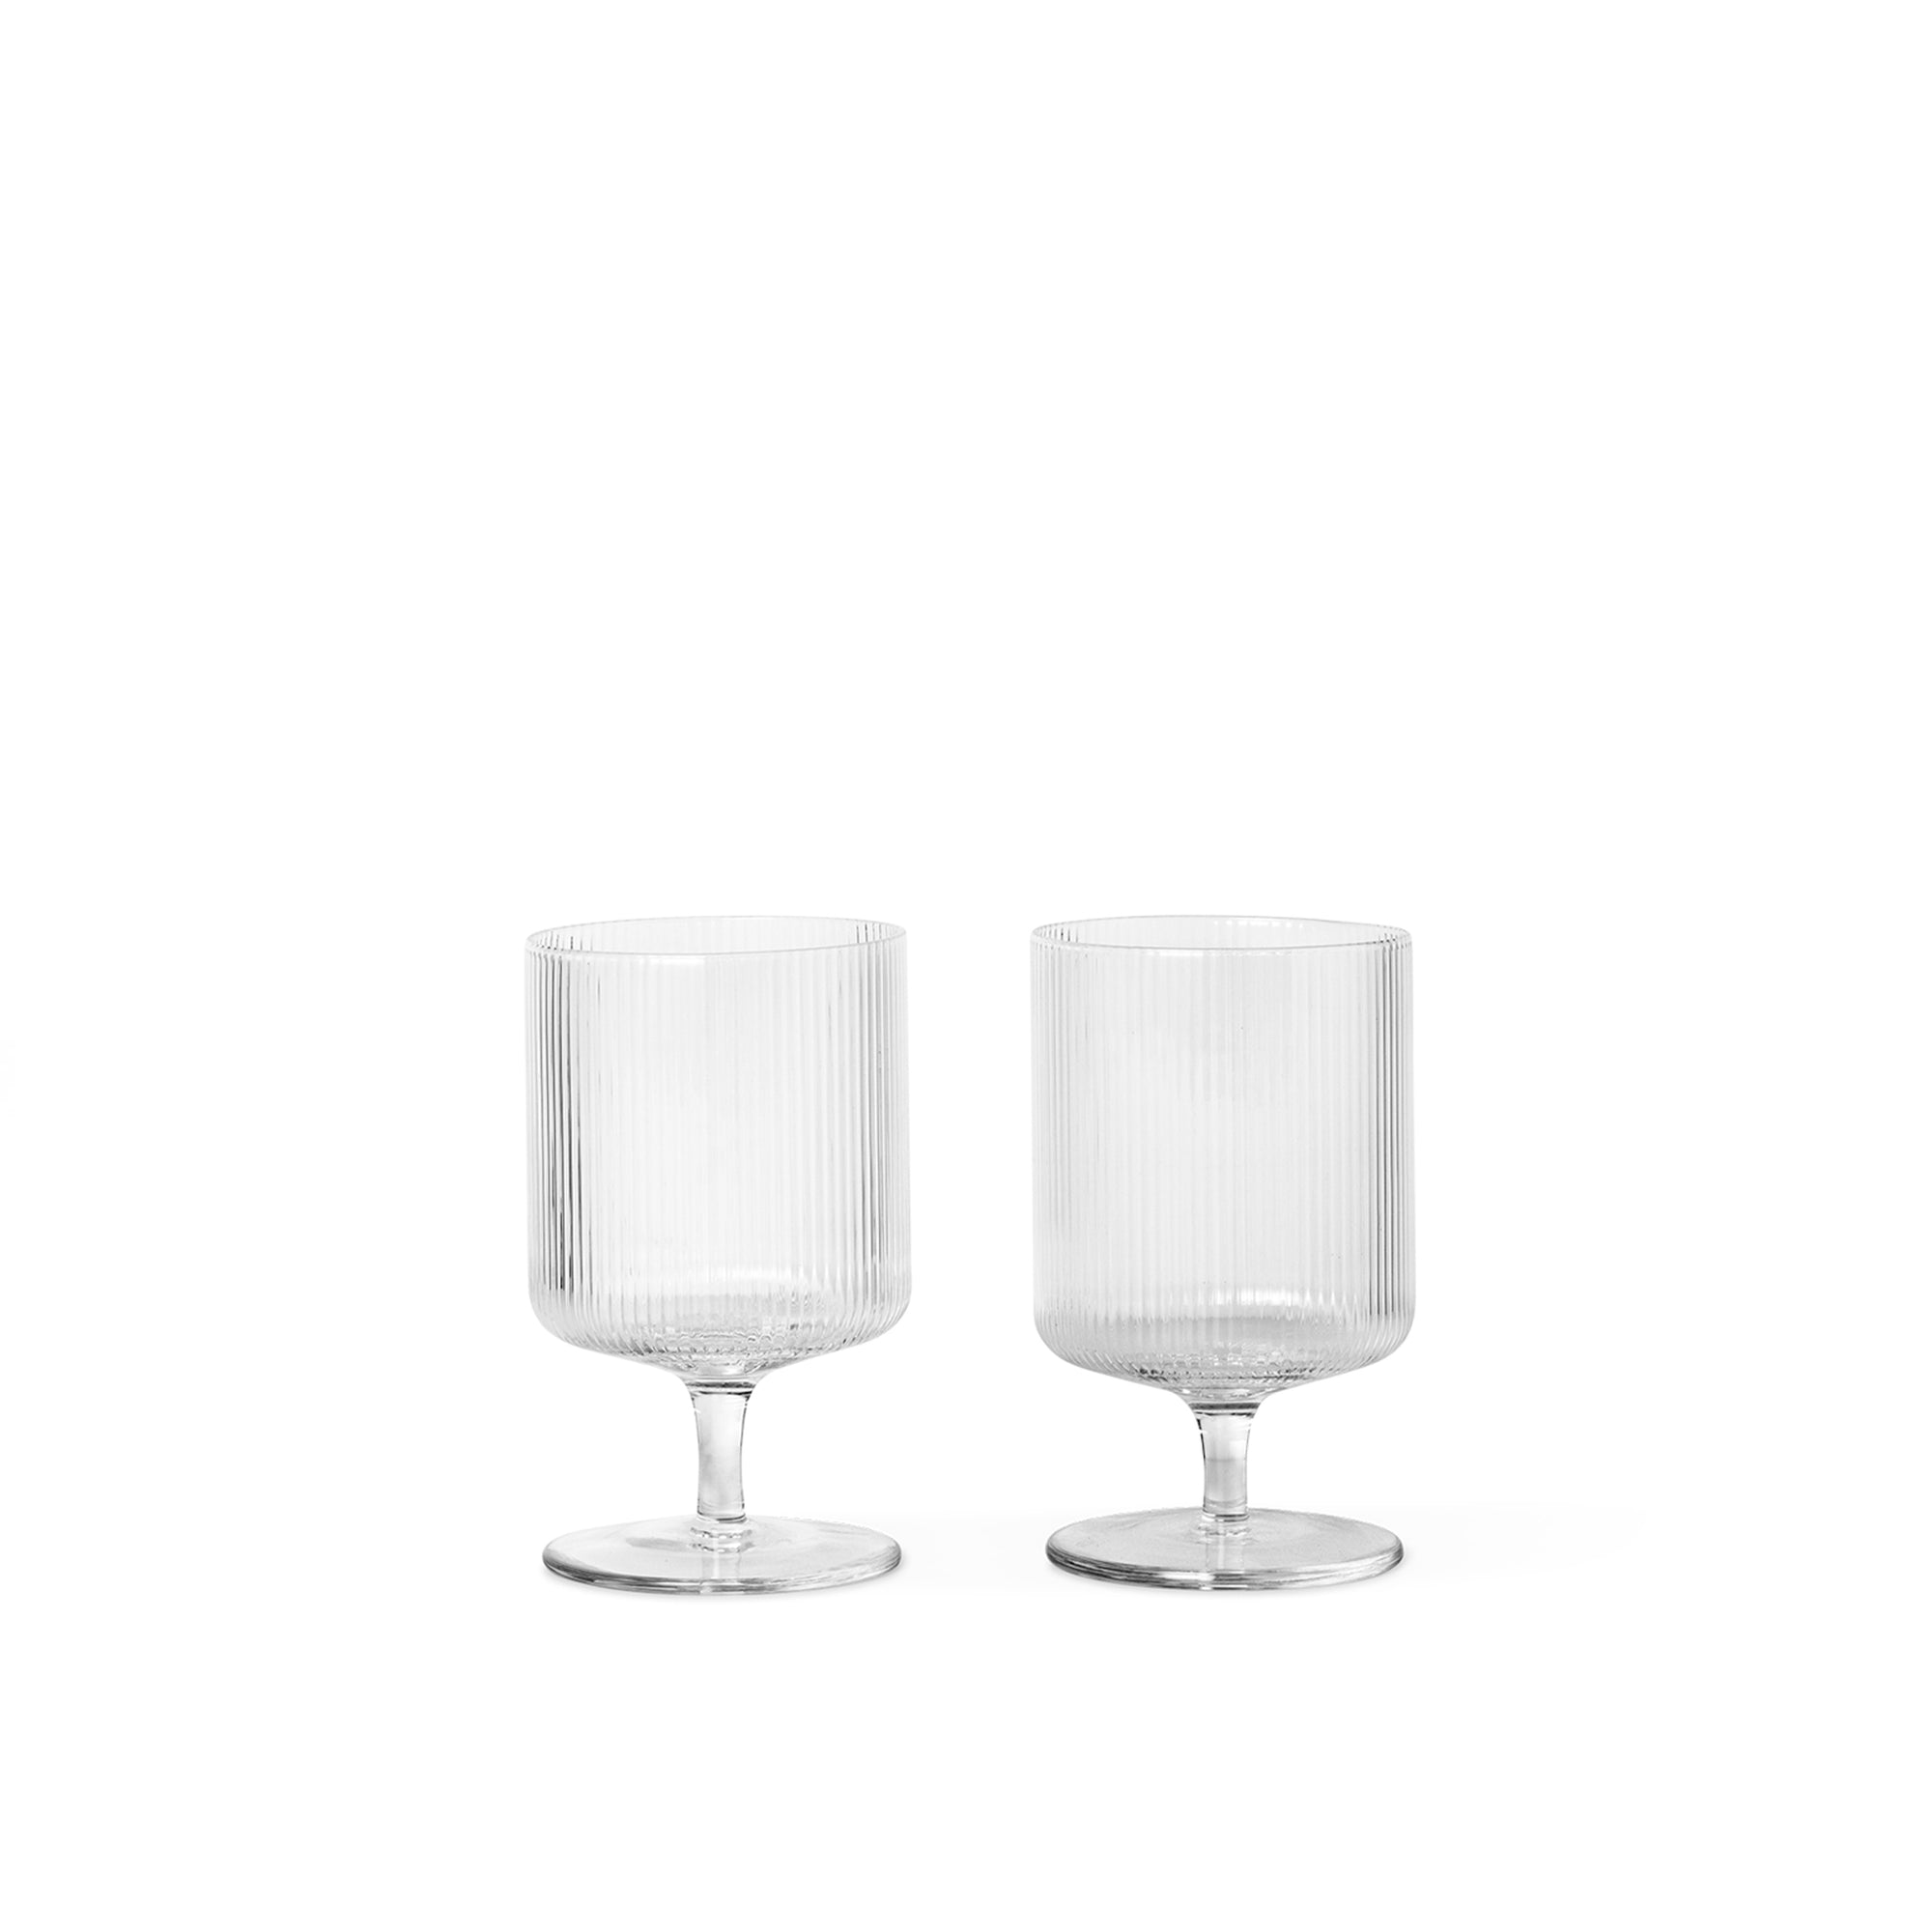 Ferm Living Ripple Wine Glasses: Clear (Set of 2) - The Union Project